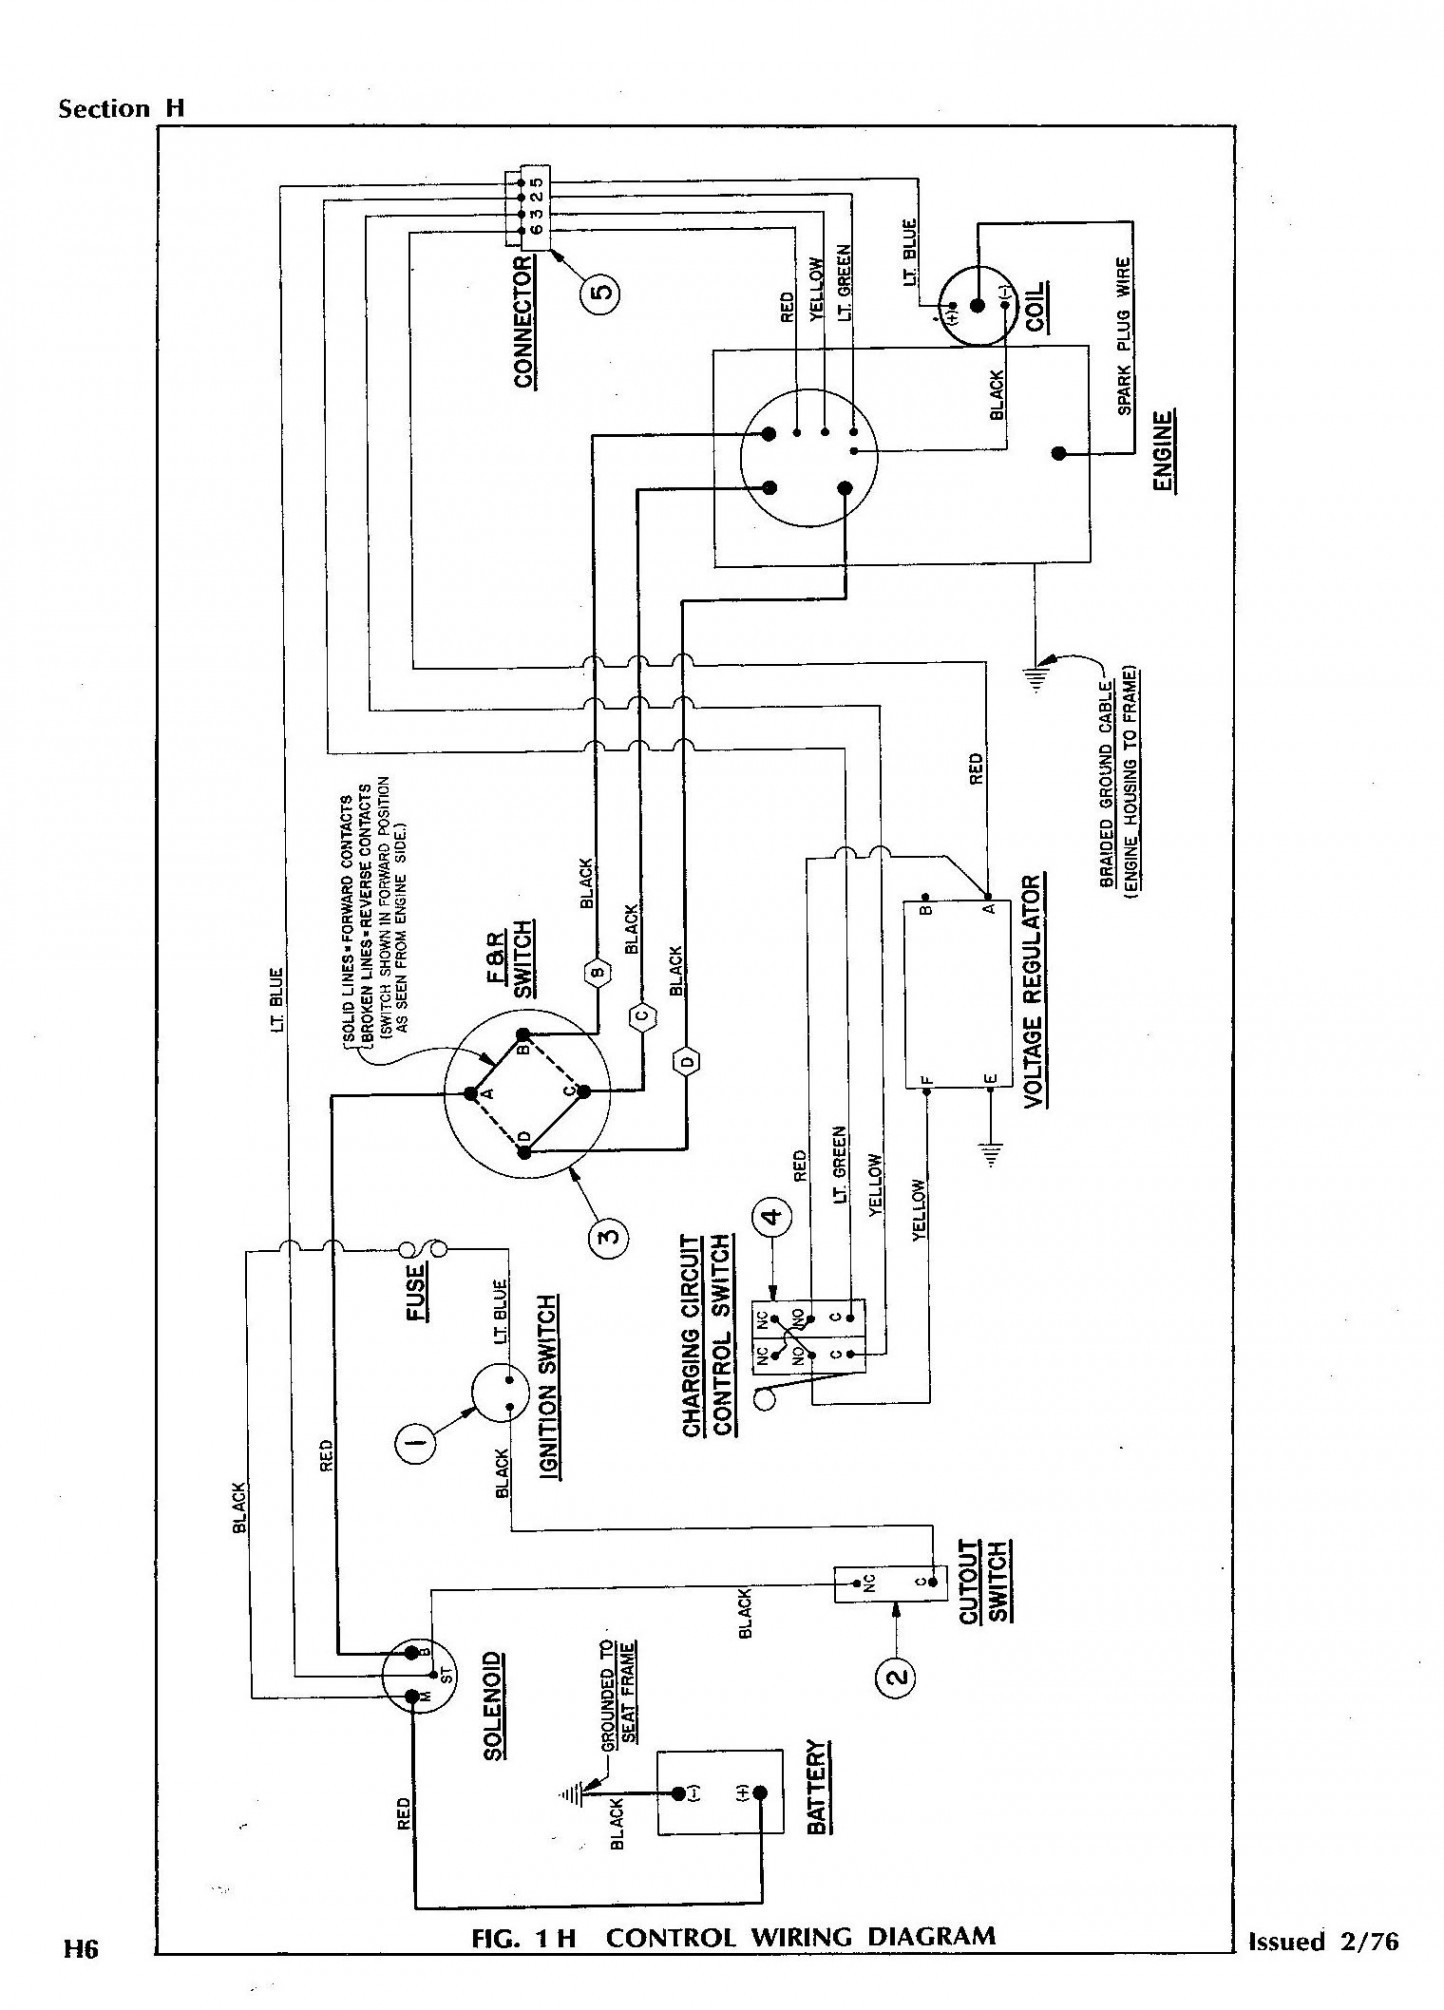 instrument wiring diagram for 98 sonoma ezgo forward reverse switch wiring diagram | free wiring ...